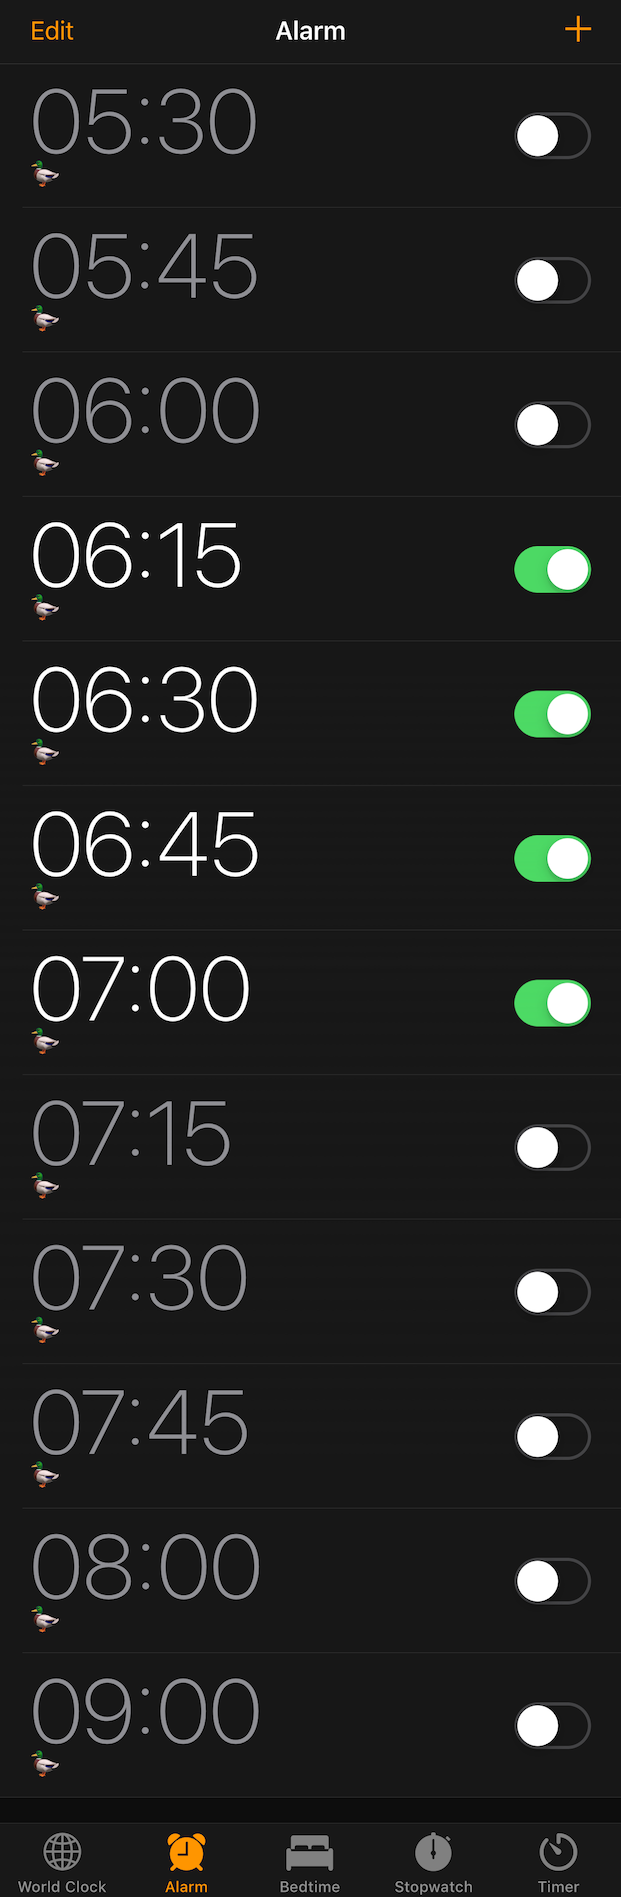 This is my long list of possible alarm clocks. Currently set for the very early mode. I named them all 🦆 - maybe I should have been more creative than that…